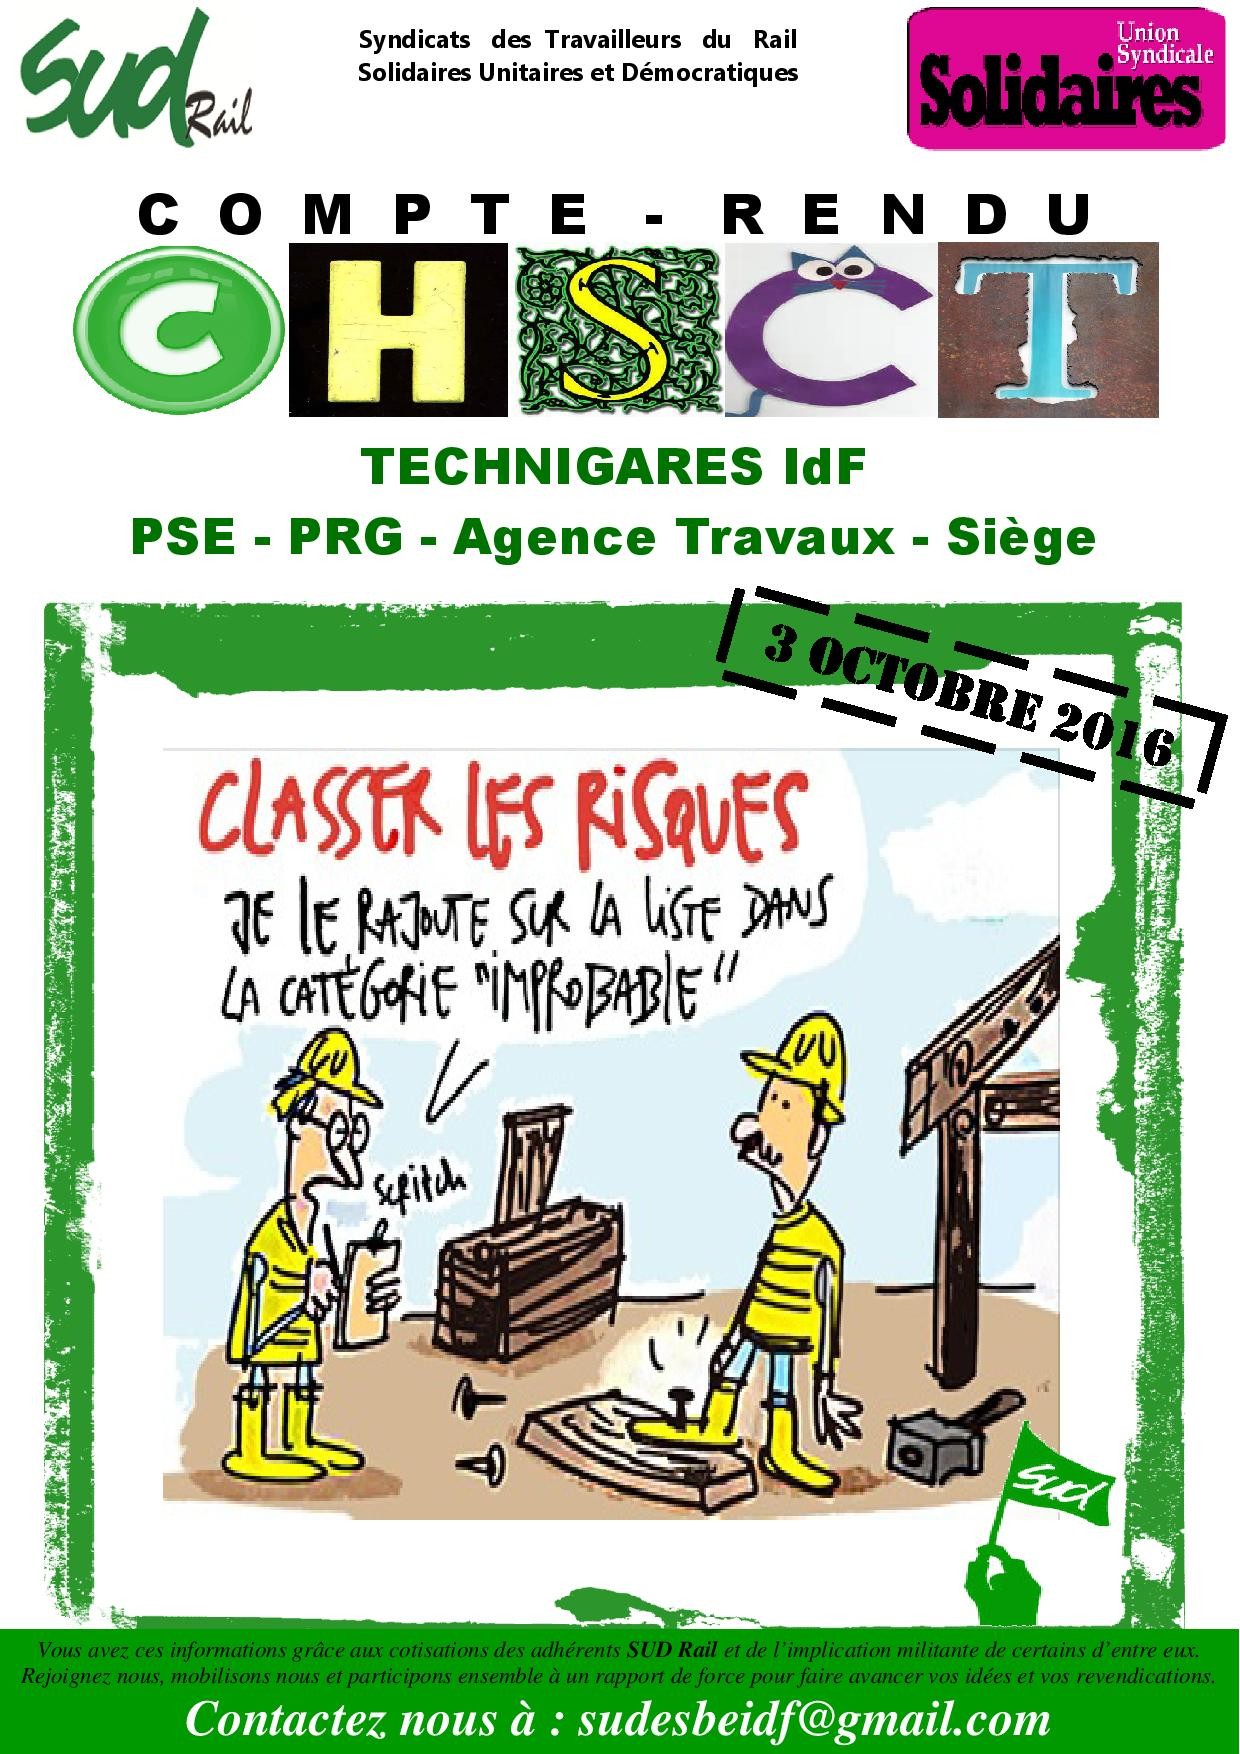 cr-chsct-technigares-idf-03-10-16-page-001